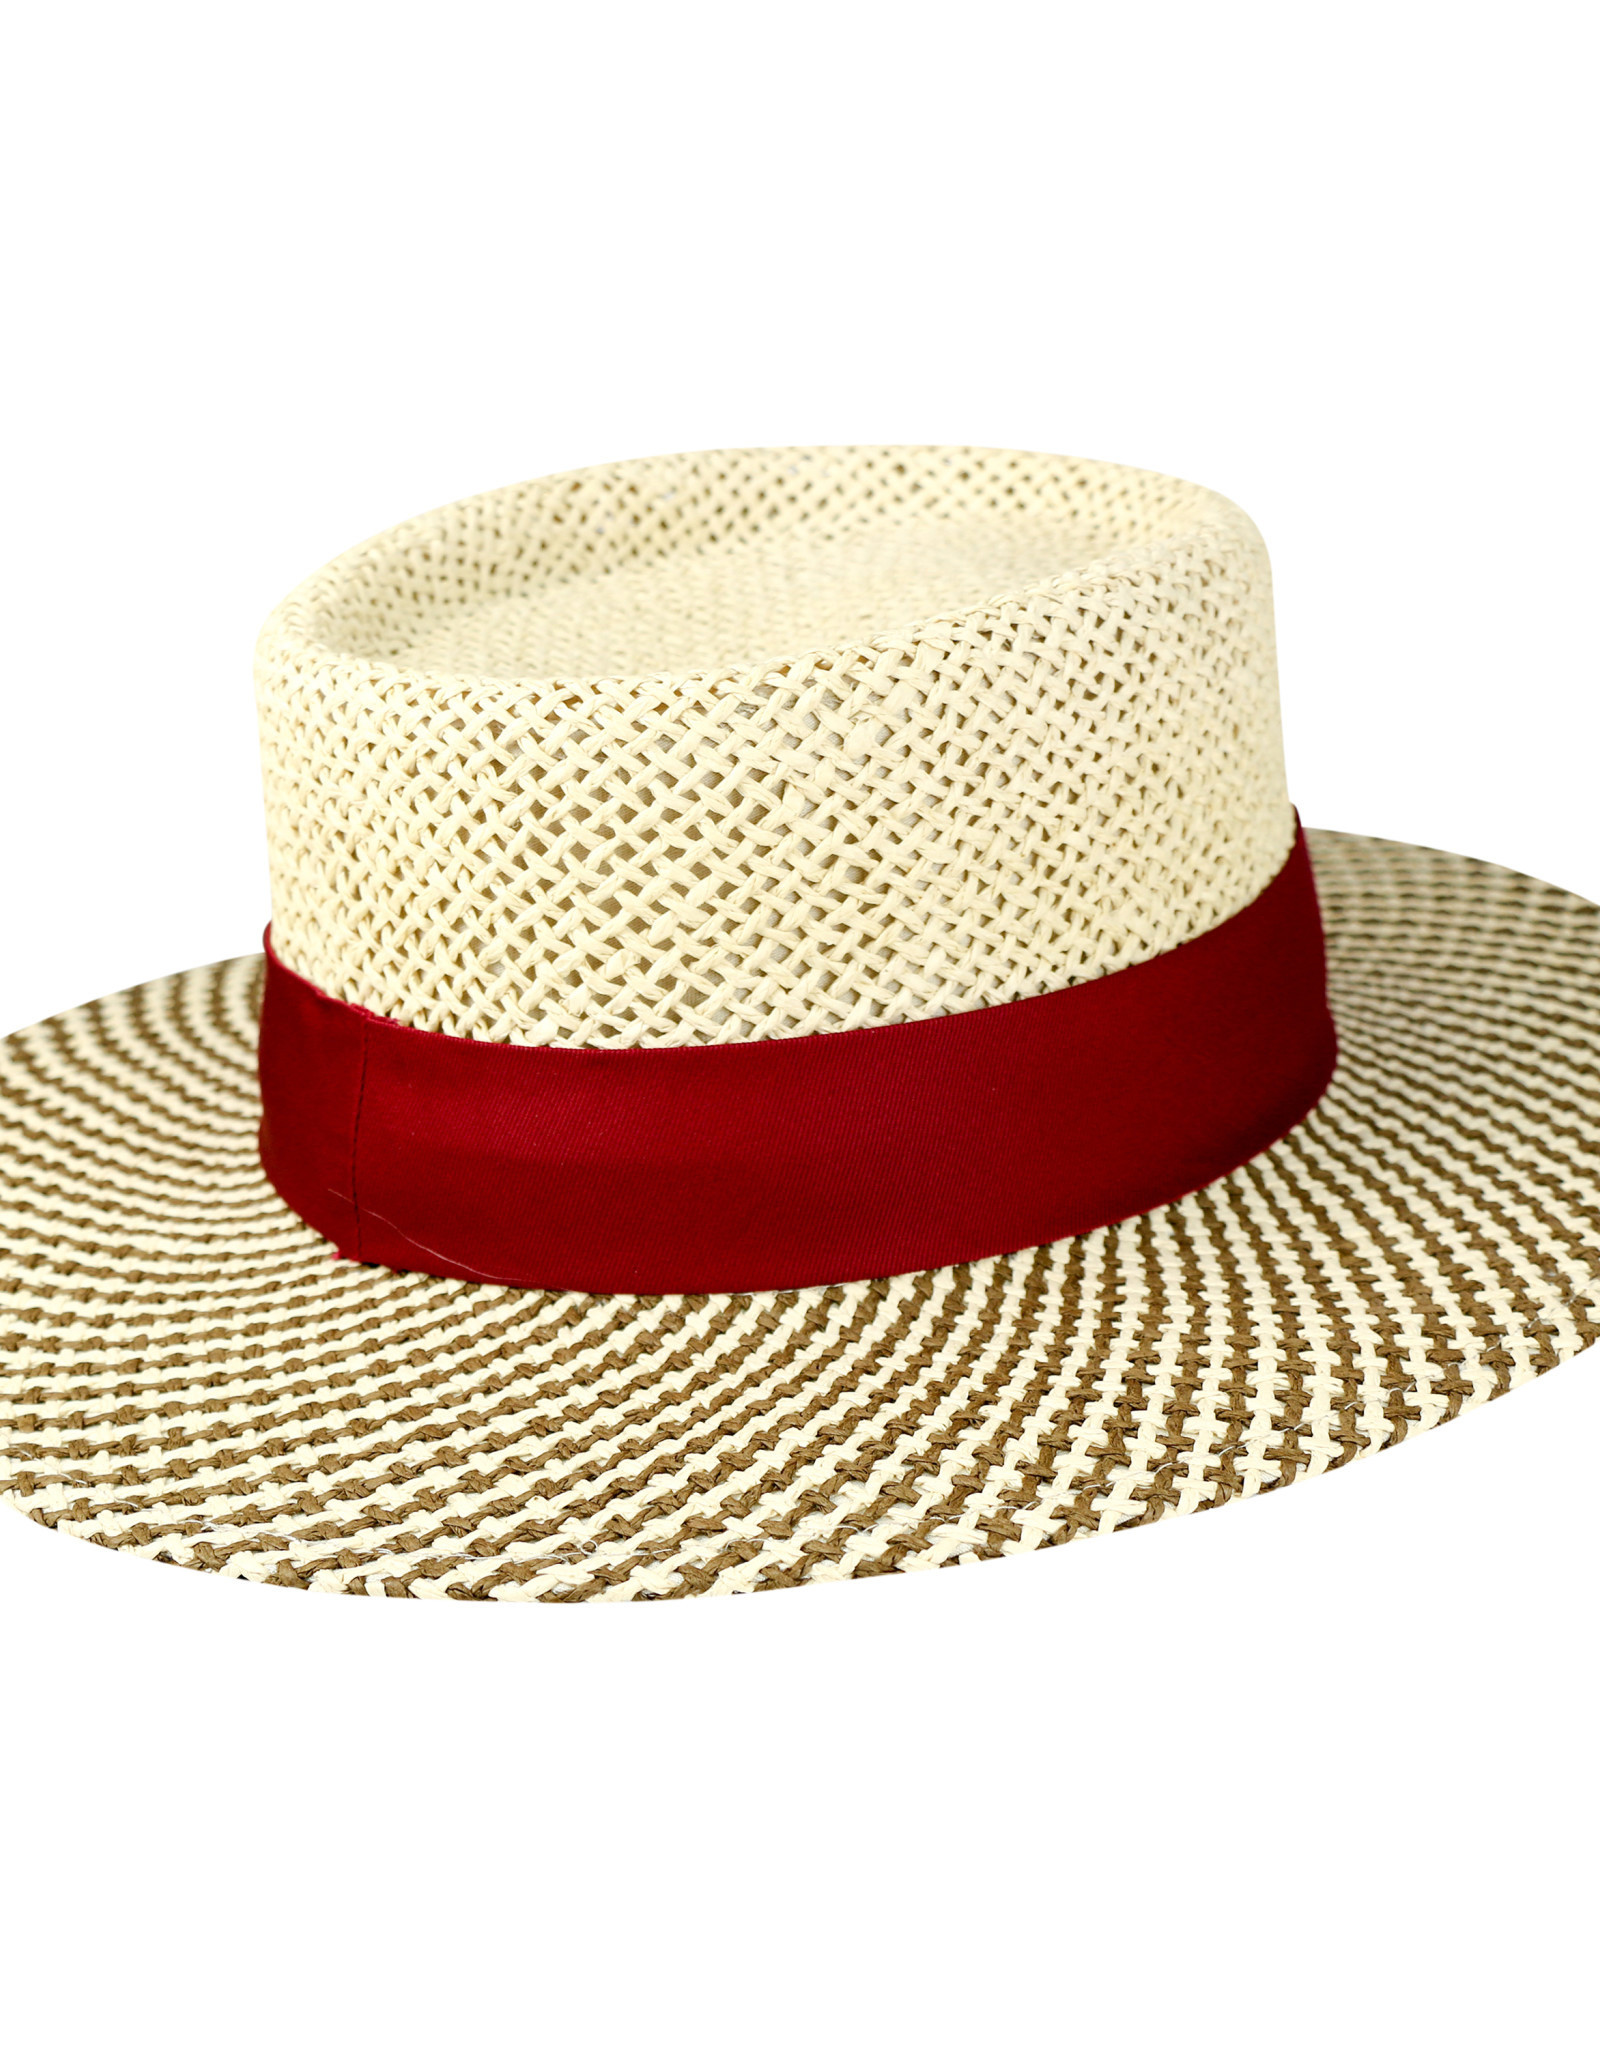 Top of the World TOW Sand Trap Straw Golf Hat